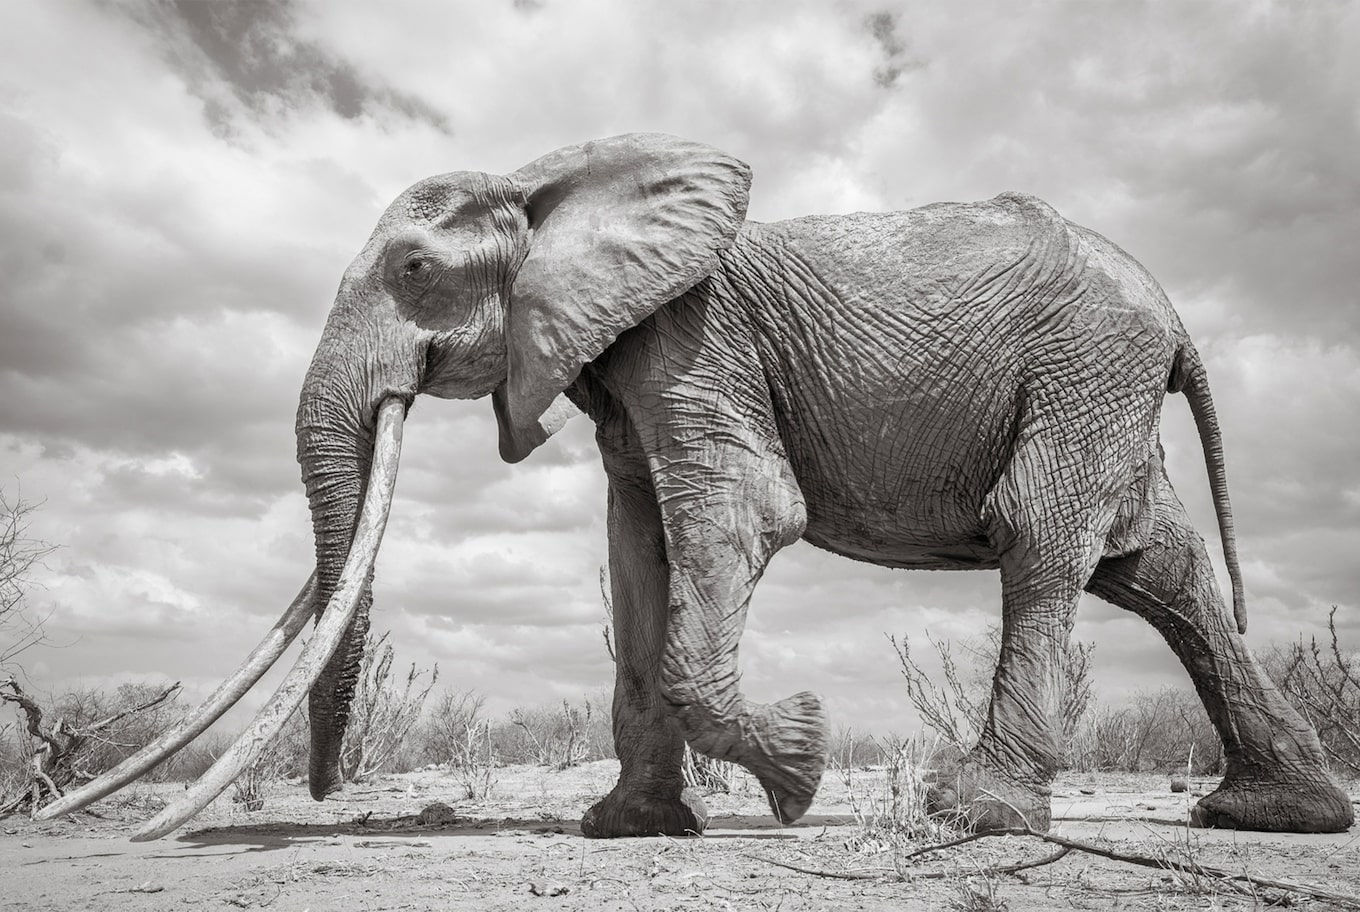 will burrard lucas sony alpha 6500 black and white elephant view from the side